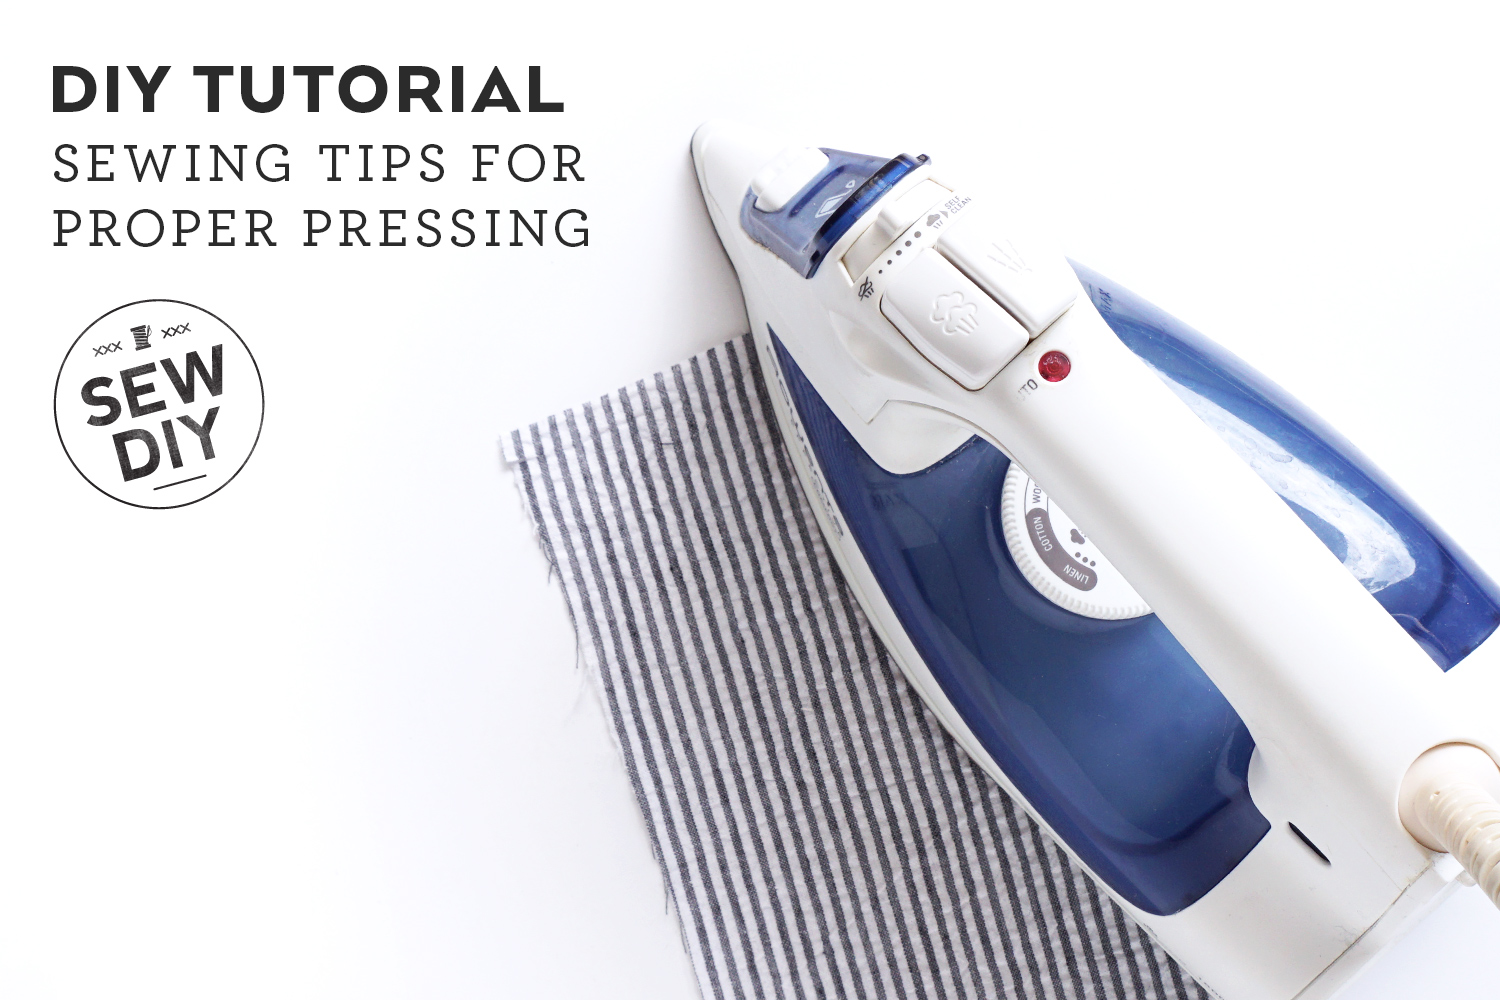 5 Sewing Tips for Better Pressing   Sew DIY